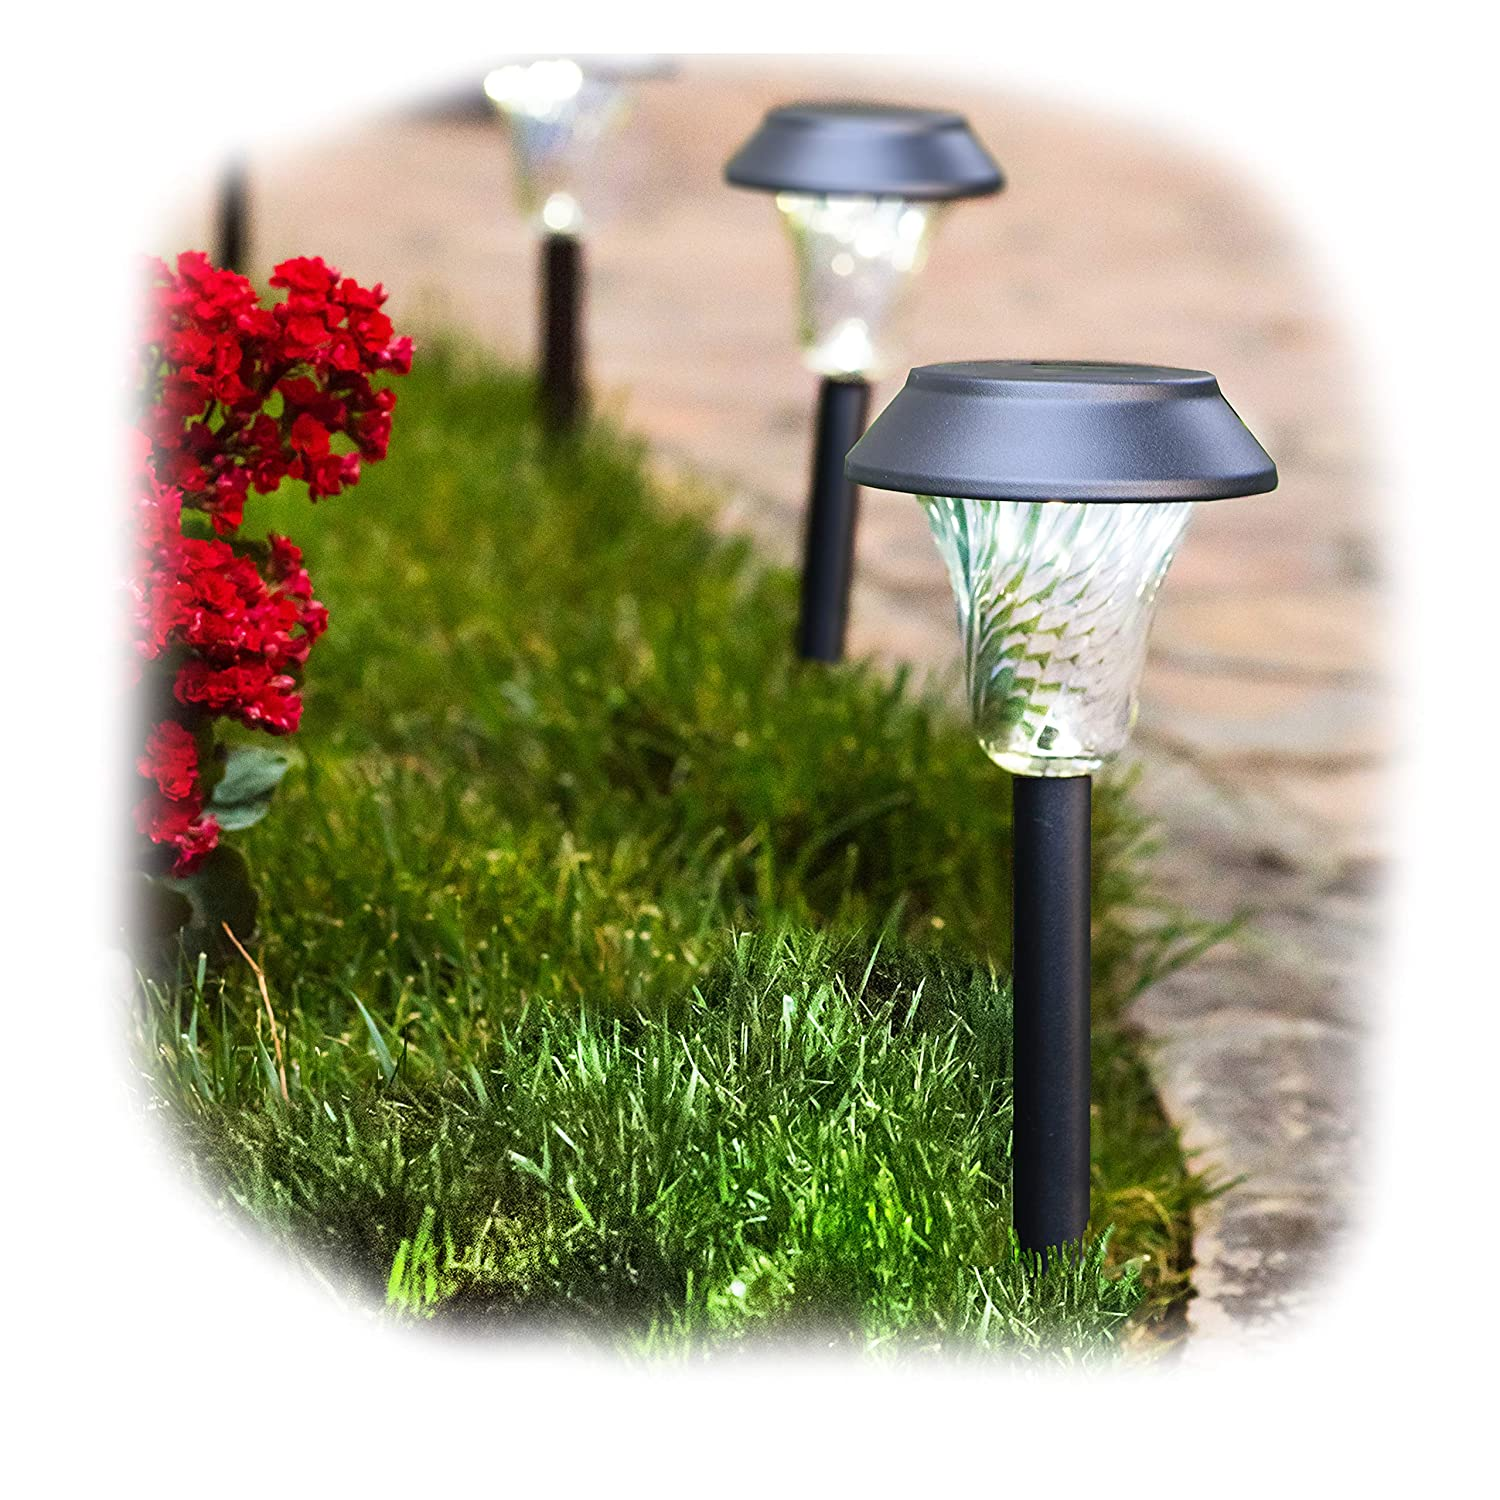 Enchanted Spaces Black Solar Path Light, Set of 6, with Glass Lens, Metal Ground Stake, and Extra-Bright LED